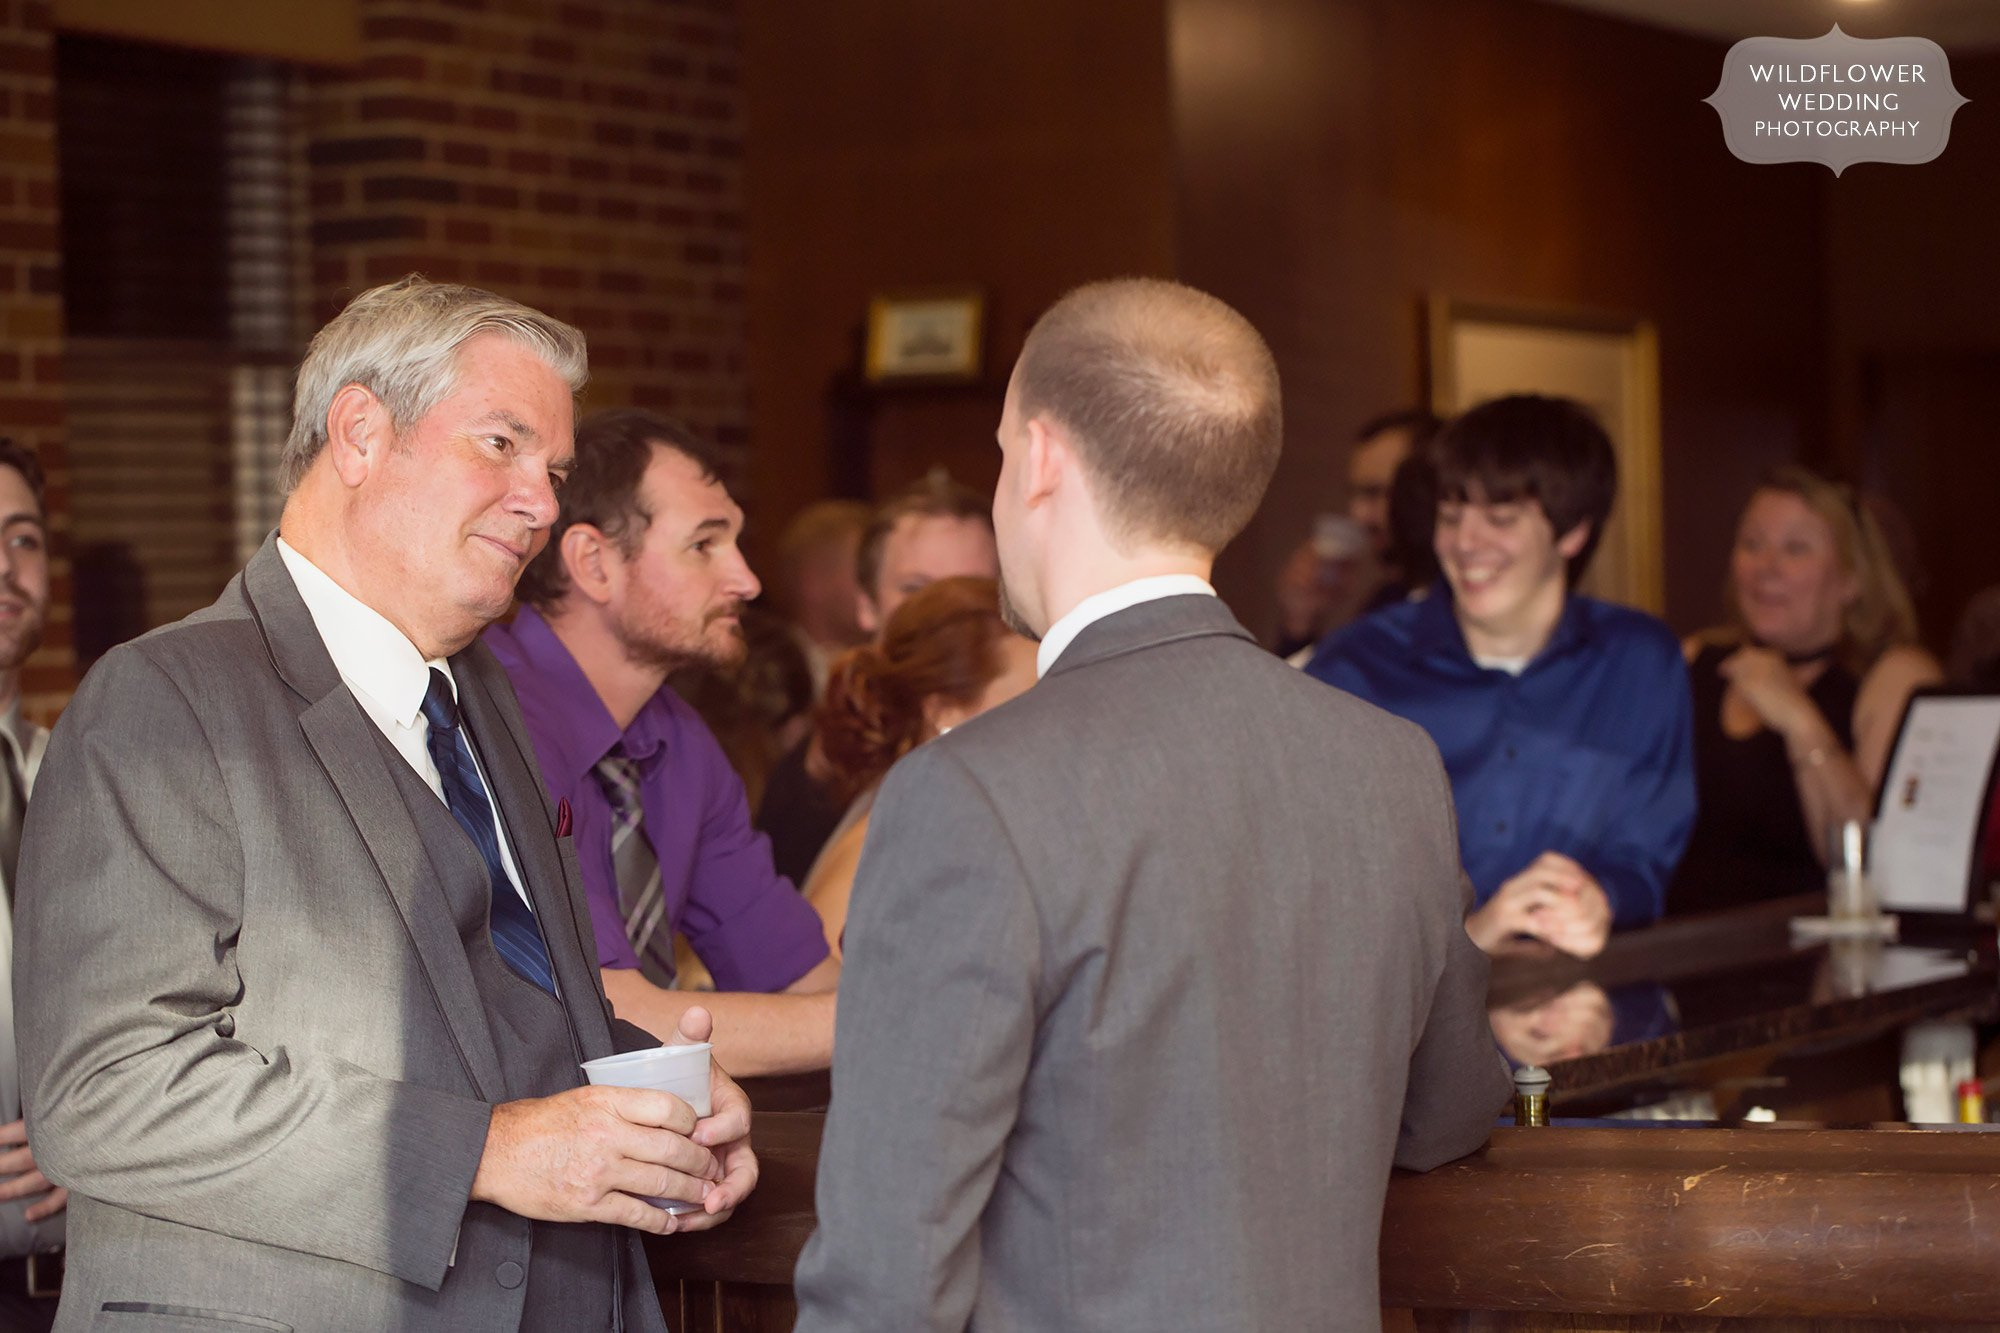 Jeff City Country Club guests enjoy drinks at bar.